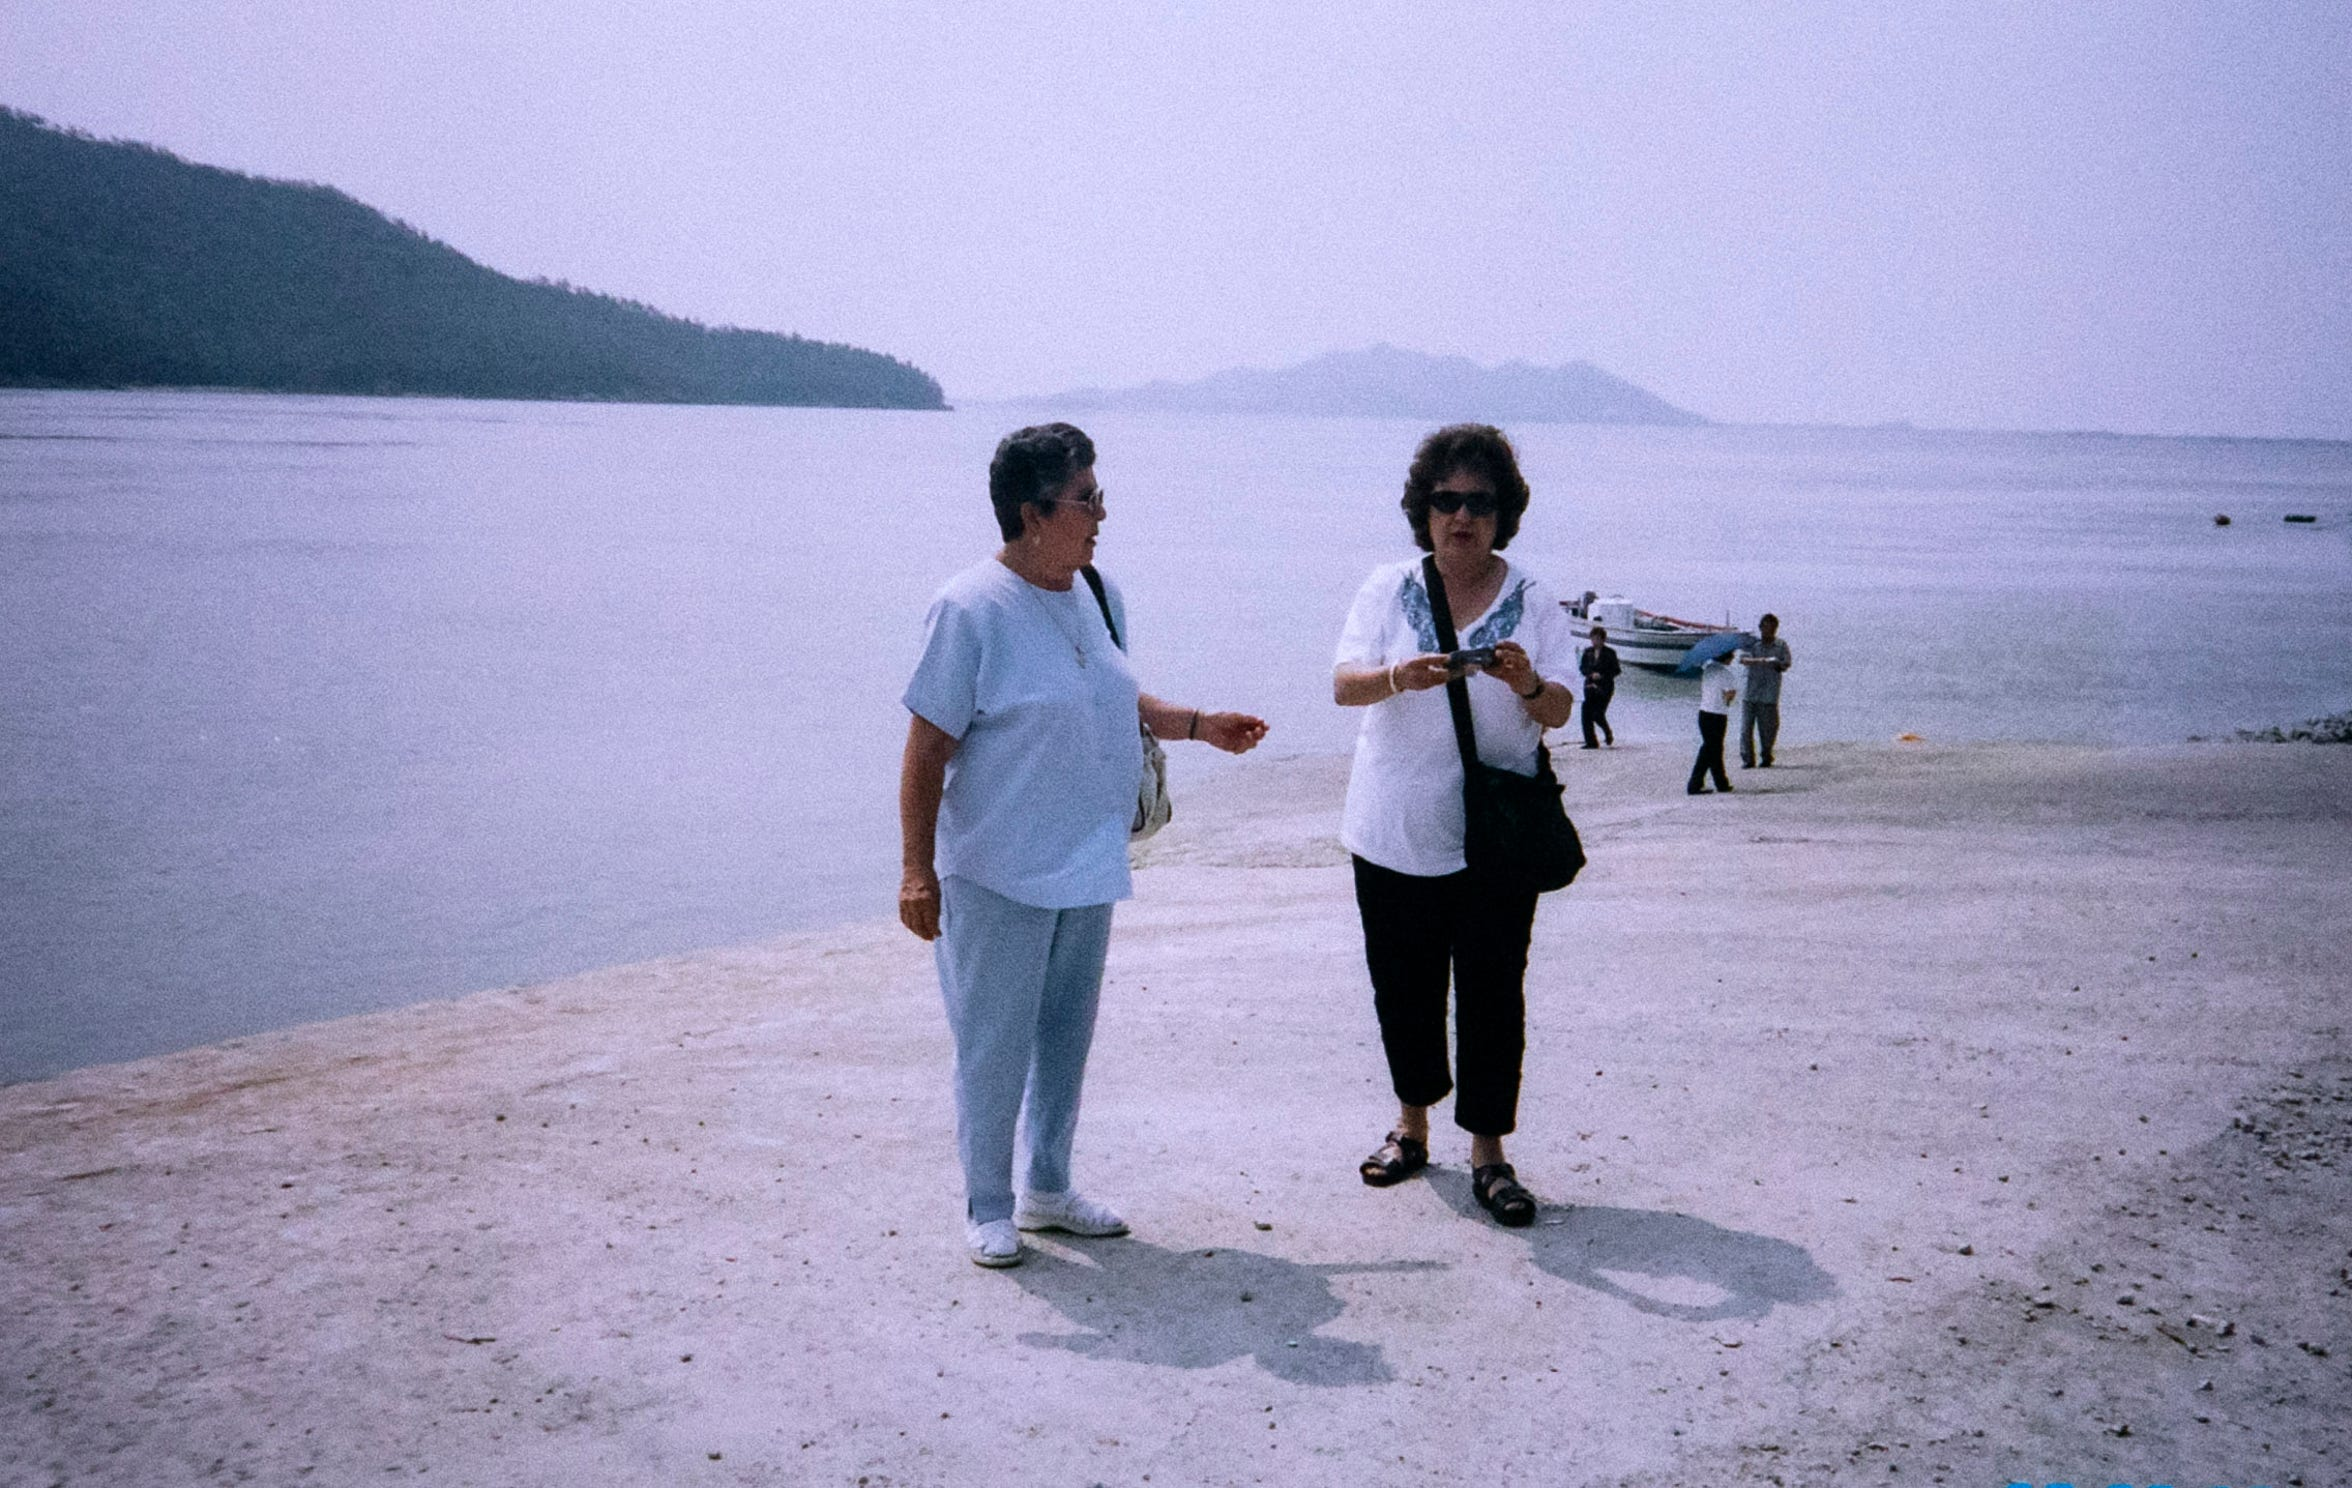 Jovita Campos (left) and Jennie Campos tour the southwest portion of South Korea on the shore of the Yellow Sea in June 2002. This location is close to where Joe Campos' (Jovita's husband and Jennie's father) B-26 ditched into the Yellow Sea on June 28, 1950. It is believed that Joe was the first person killed in the Korean War when his plane went down.